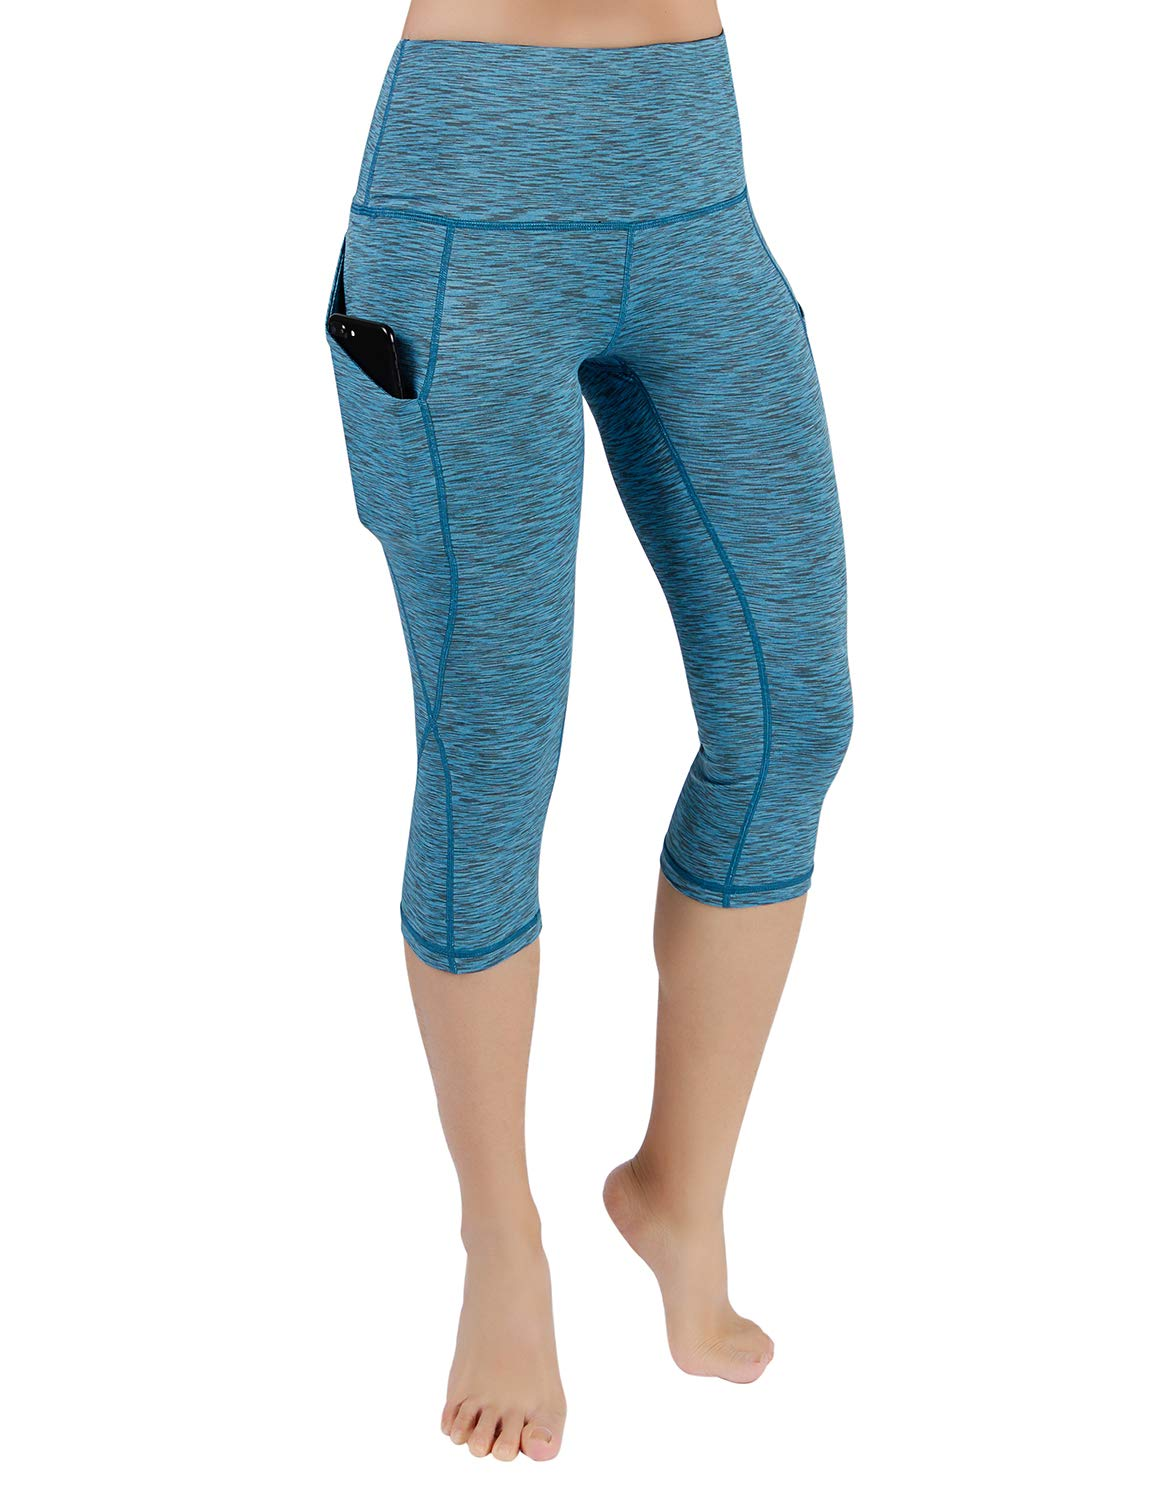 ODODOS High Waist Out Pocket Yoga Capris Pants Tummy Control Workout Running 4 Way Stretch Yoga Leggings,SpaceDyeBlue,X-Small by ODODOS (Image #2)